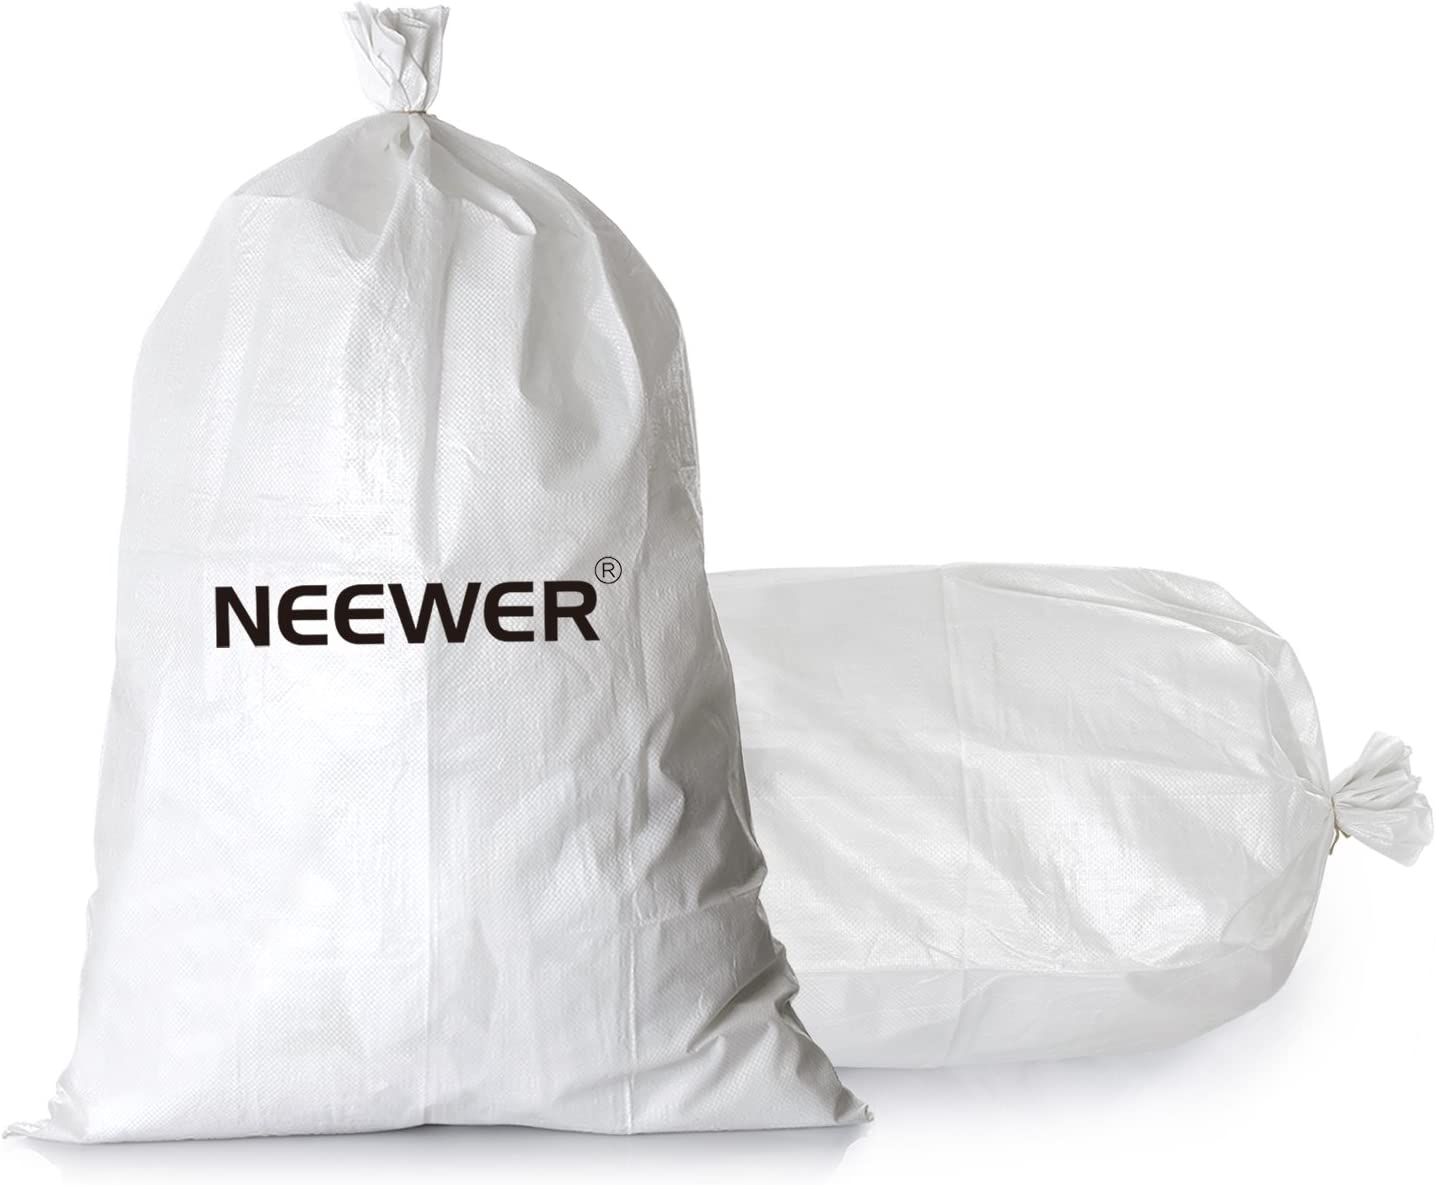 Neewer 20 Pack 25x14//63cm x 35cm Empty White Woven Polypropylene Sandbags with UV Coating Protection for Flood Protection,Construction Projects,Driveway and Traffic Control